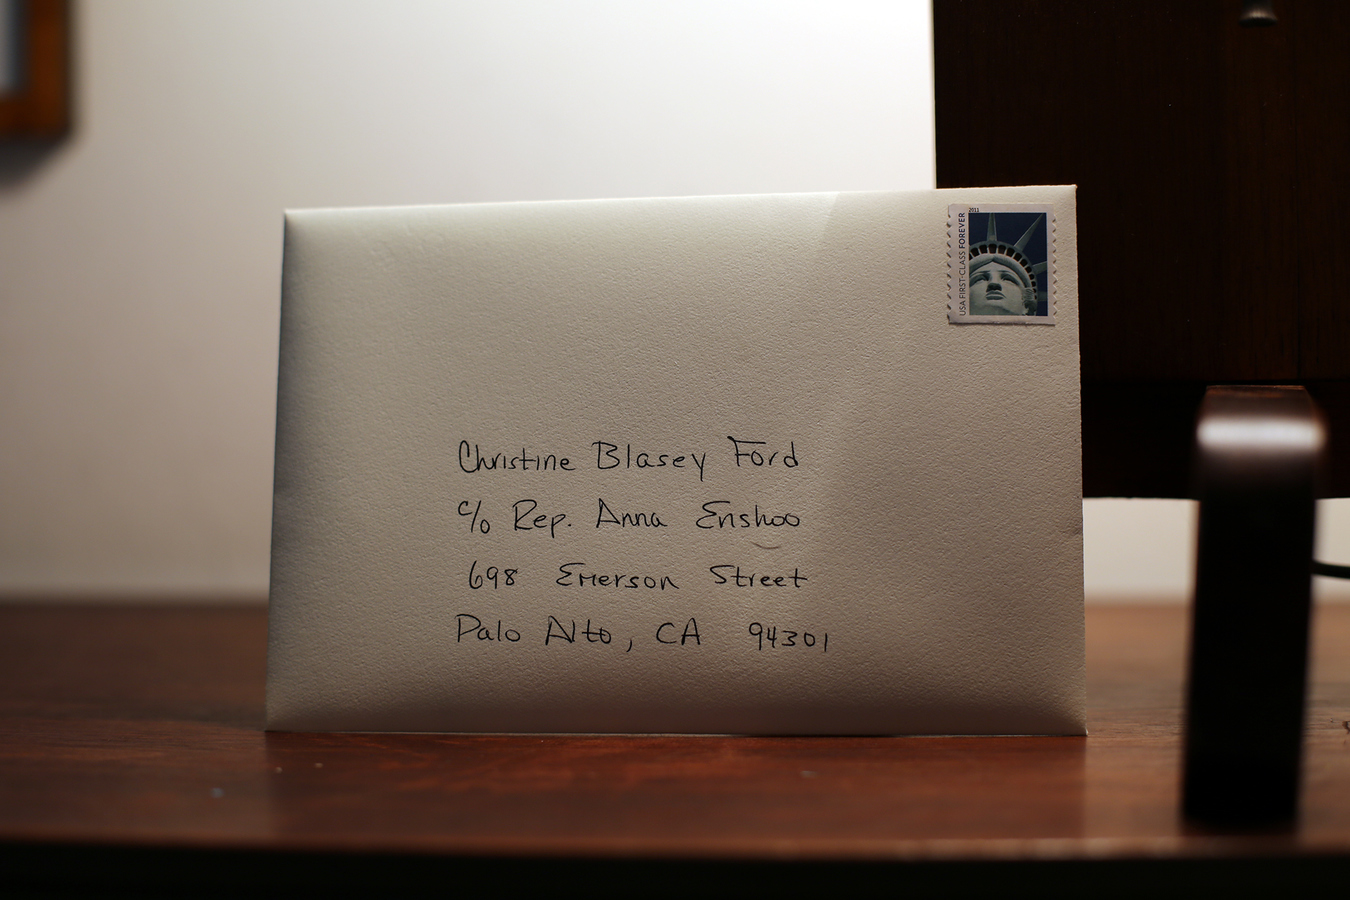 Mail Thank You Letter To Christine Blasey Ford